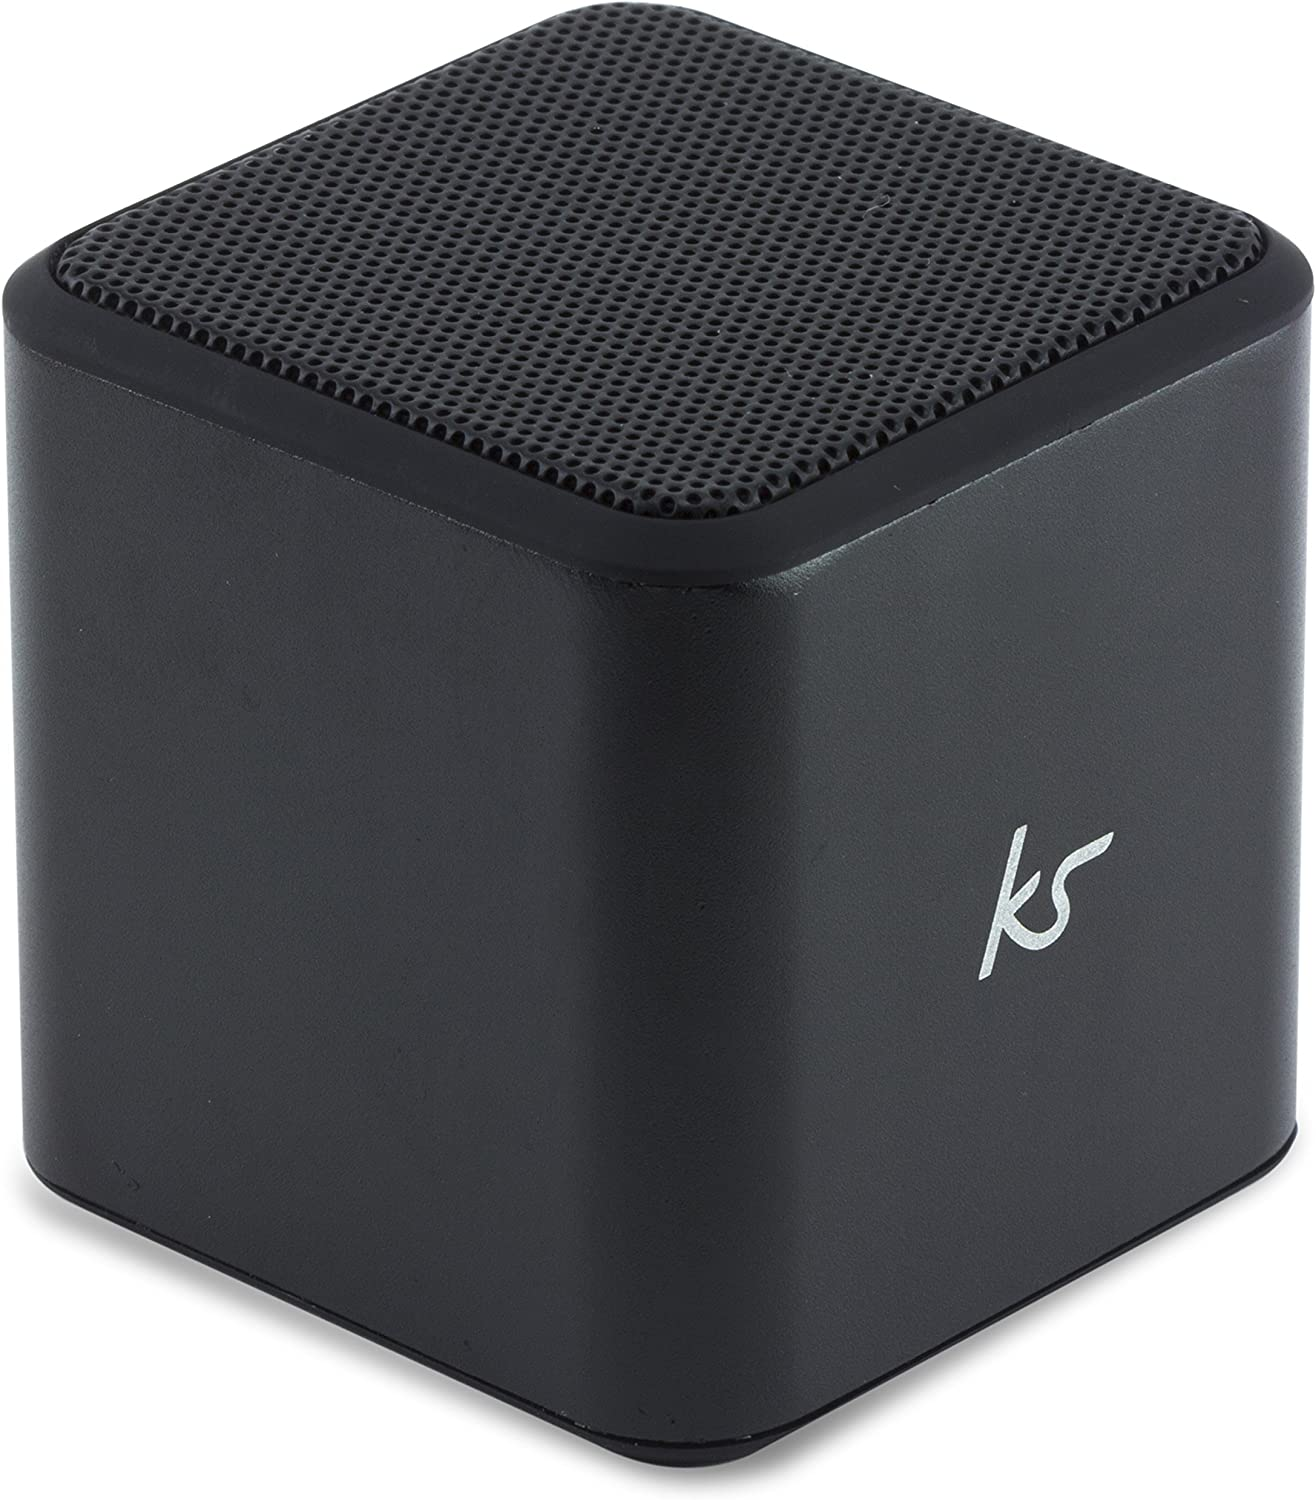 KitSound Cube Universal Bluetooth Wireless Portable Speaker Compatible with  iPod, iPad, iPhone, Samsung and Android devices - Black